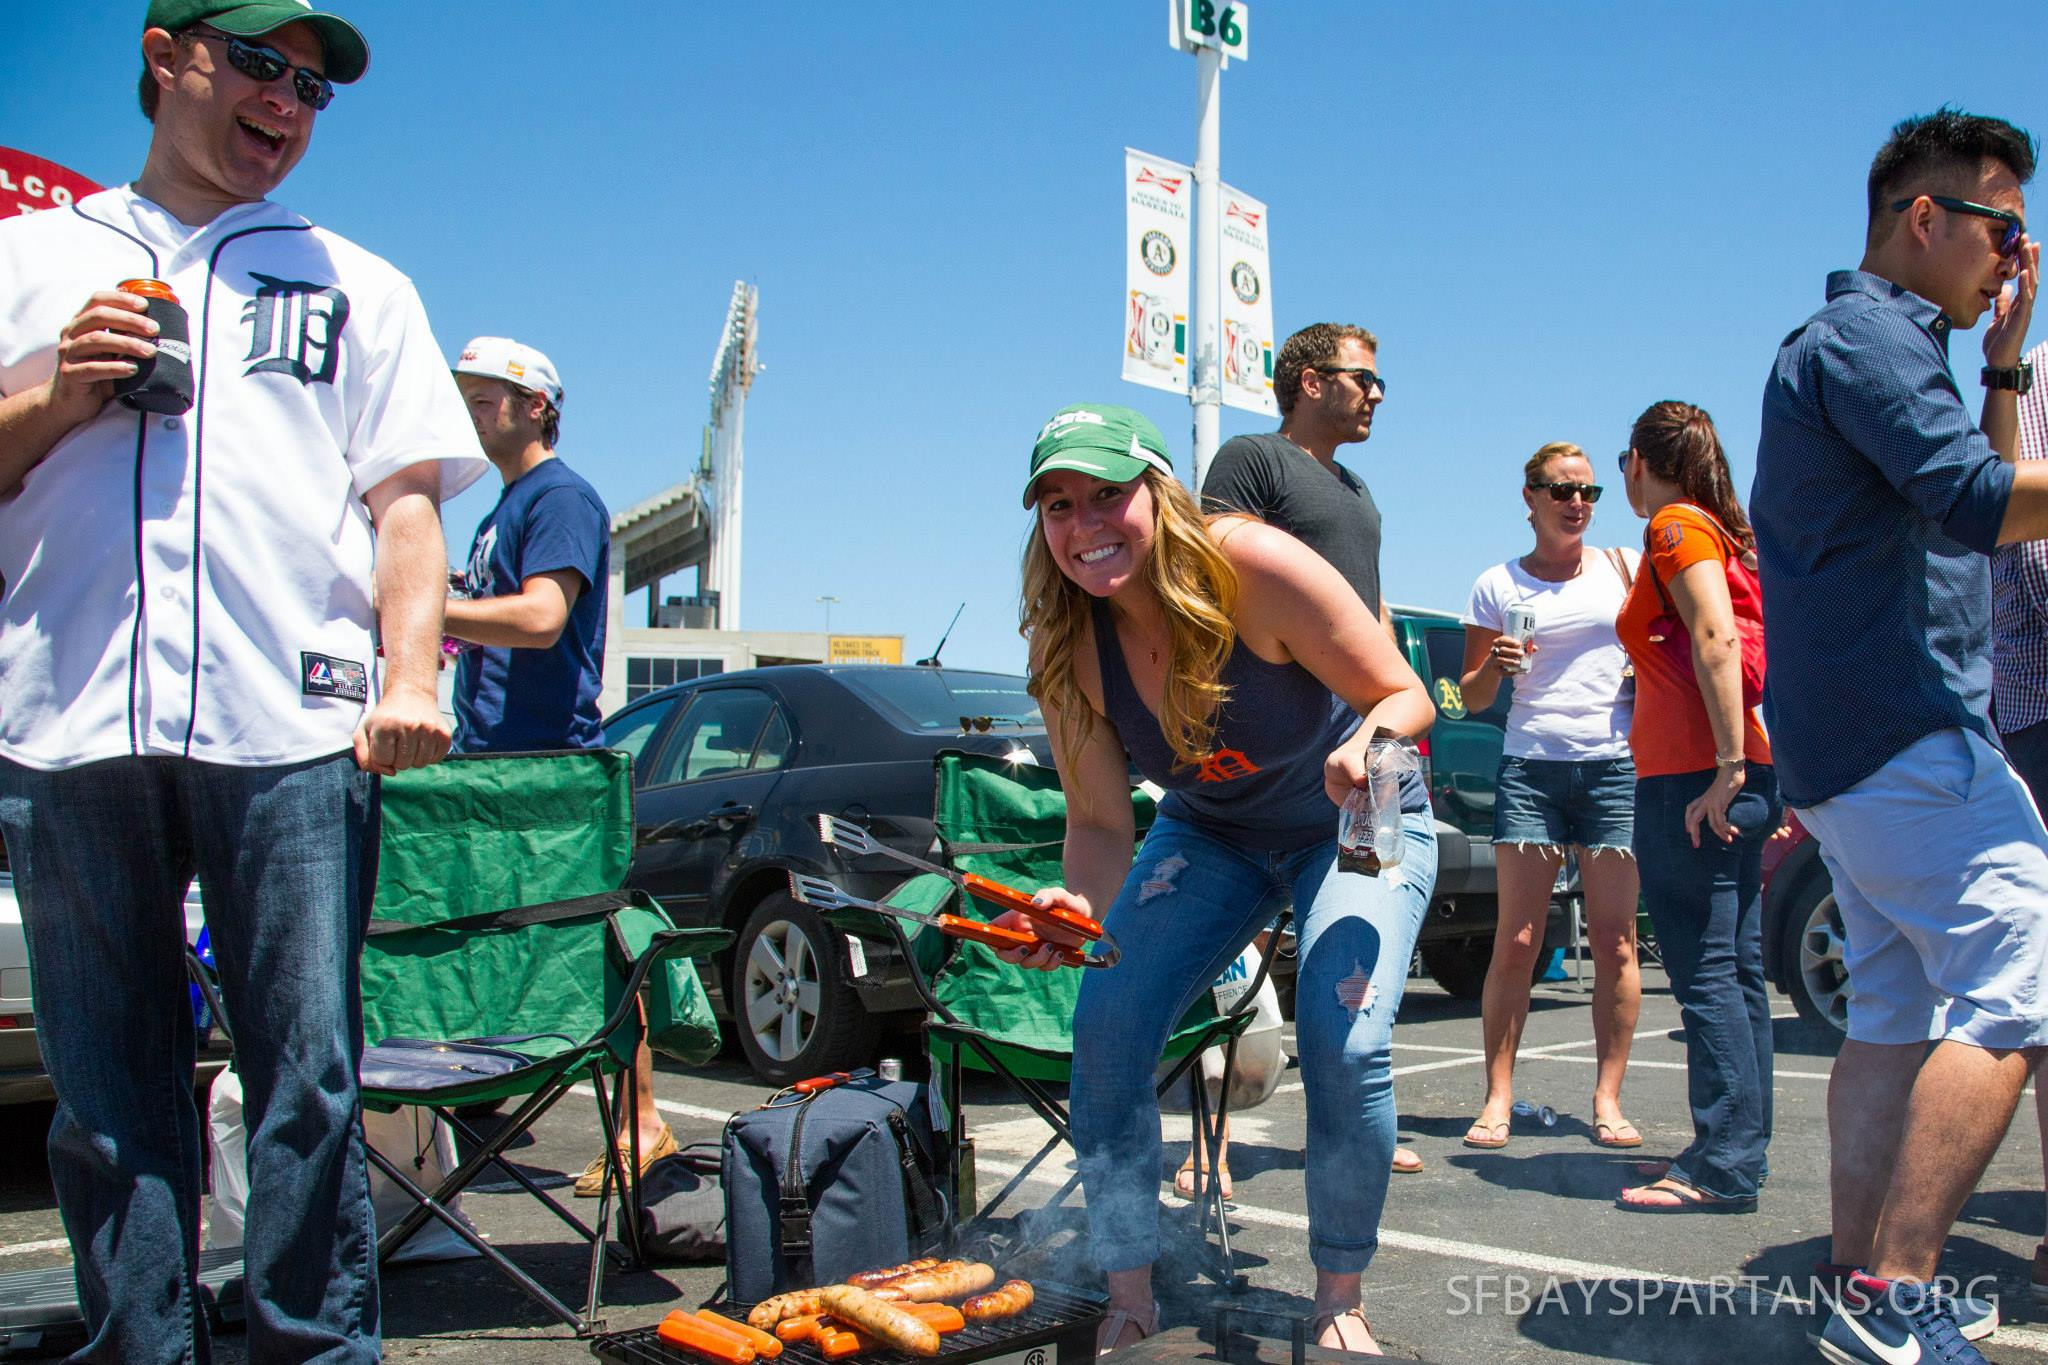 From last year's tailgate party!